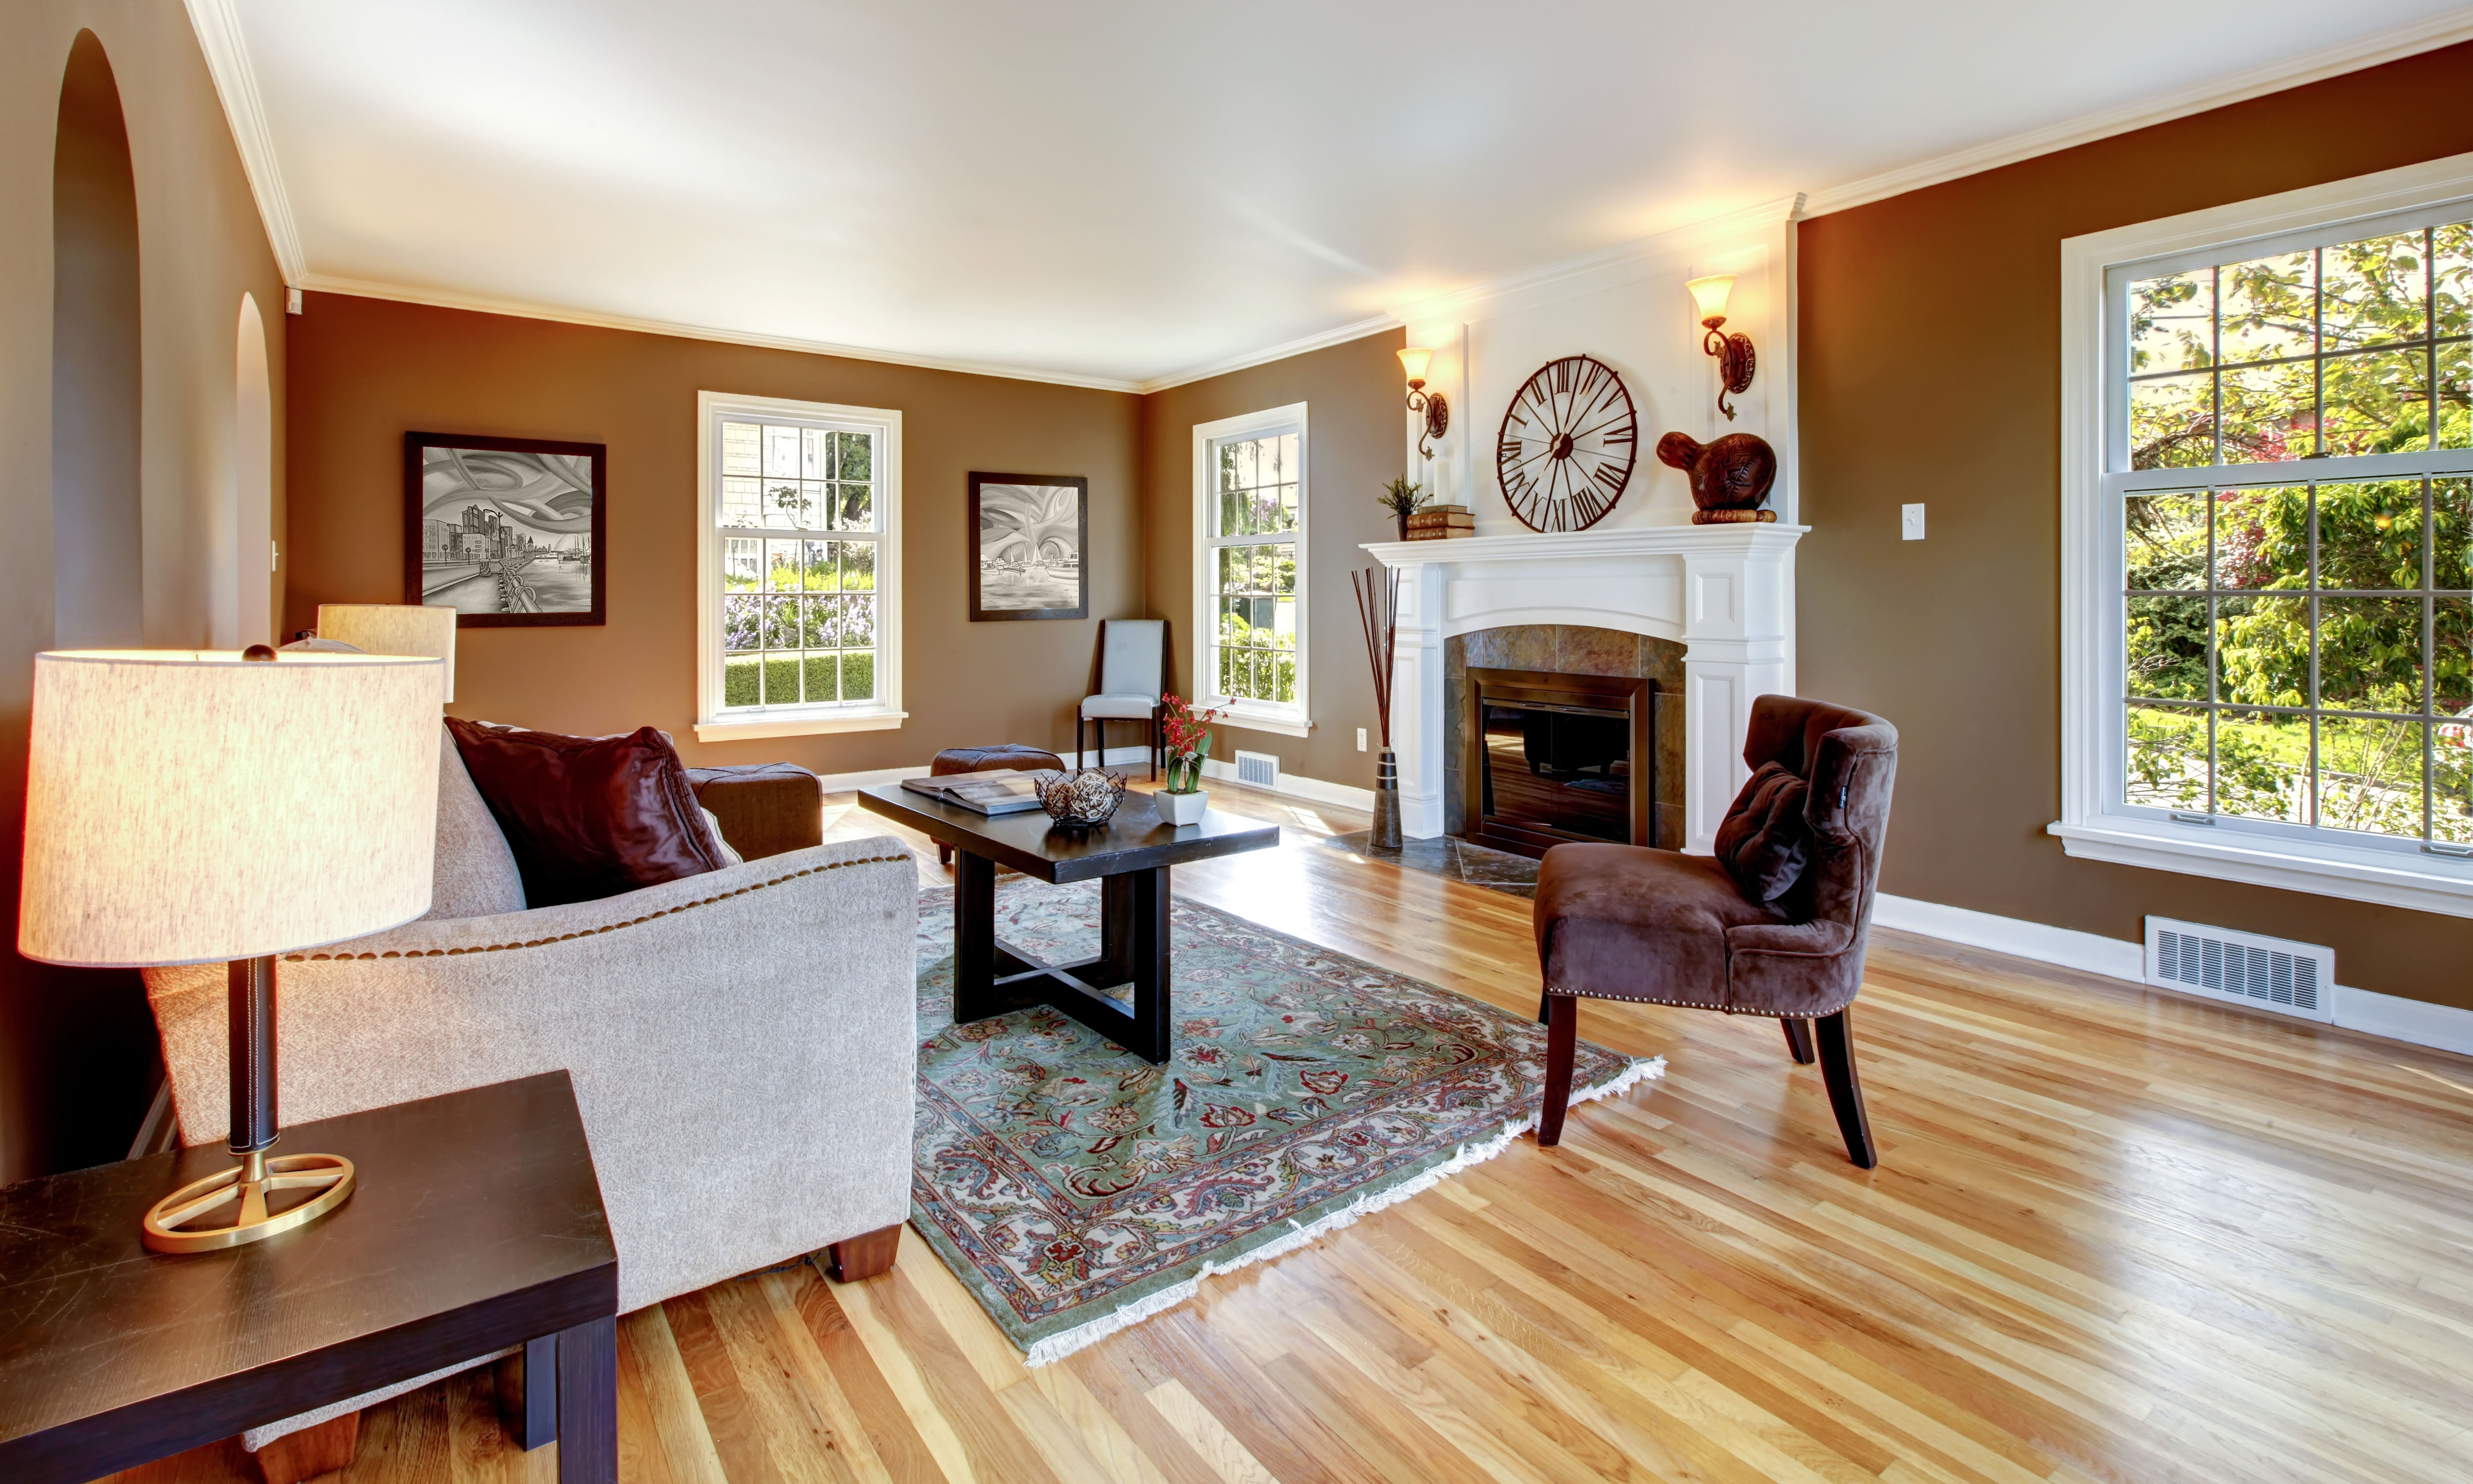 Living Room Remodeling Project. Remodeling Contractors